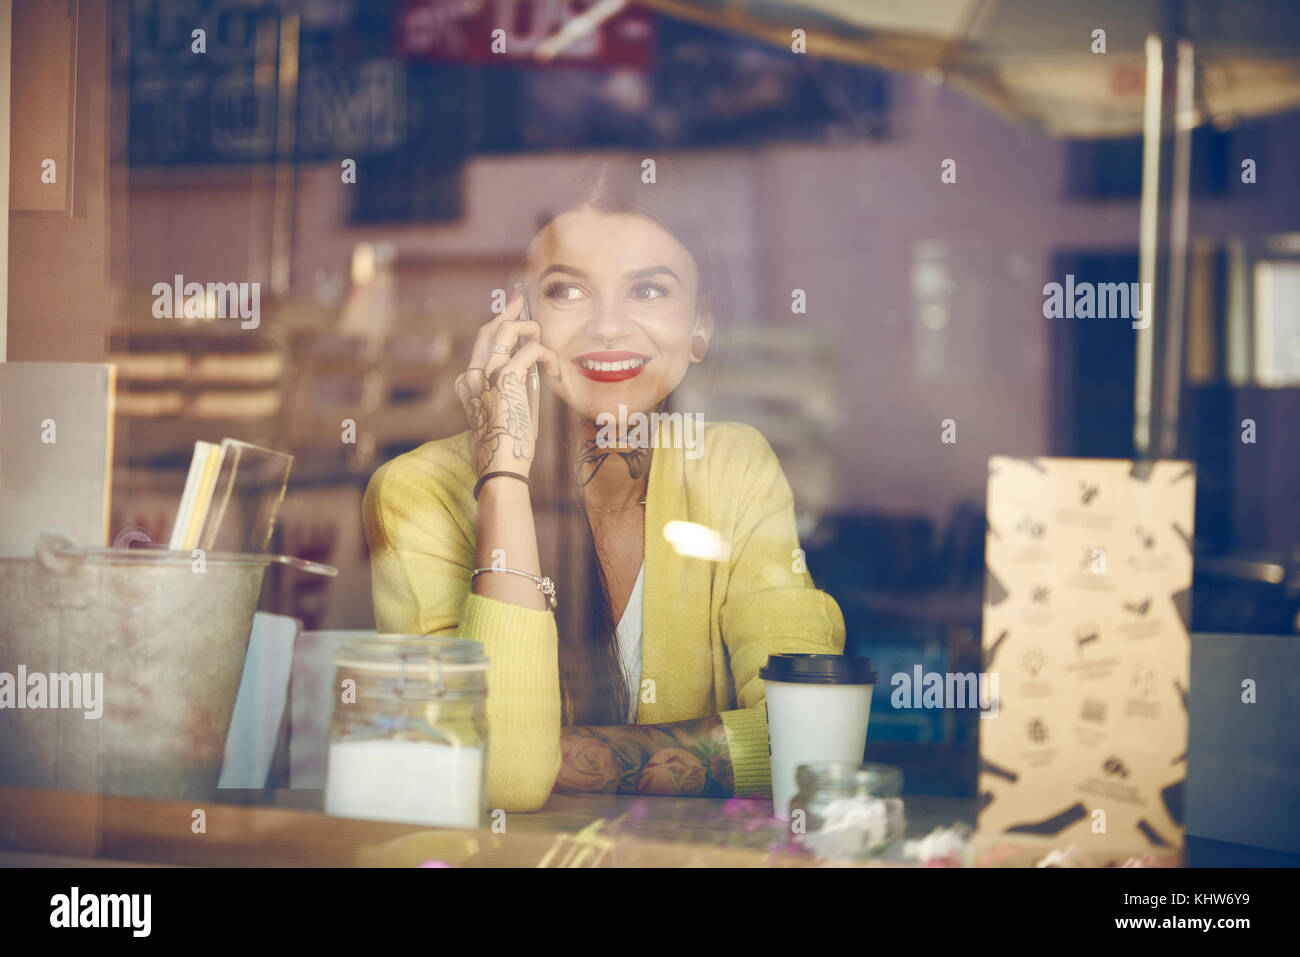 Young woman sitting in cafe, using smartphone, tattoos on hand, view through cafe window - Stock Image